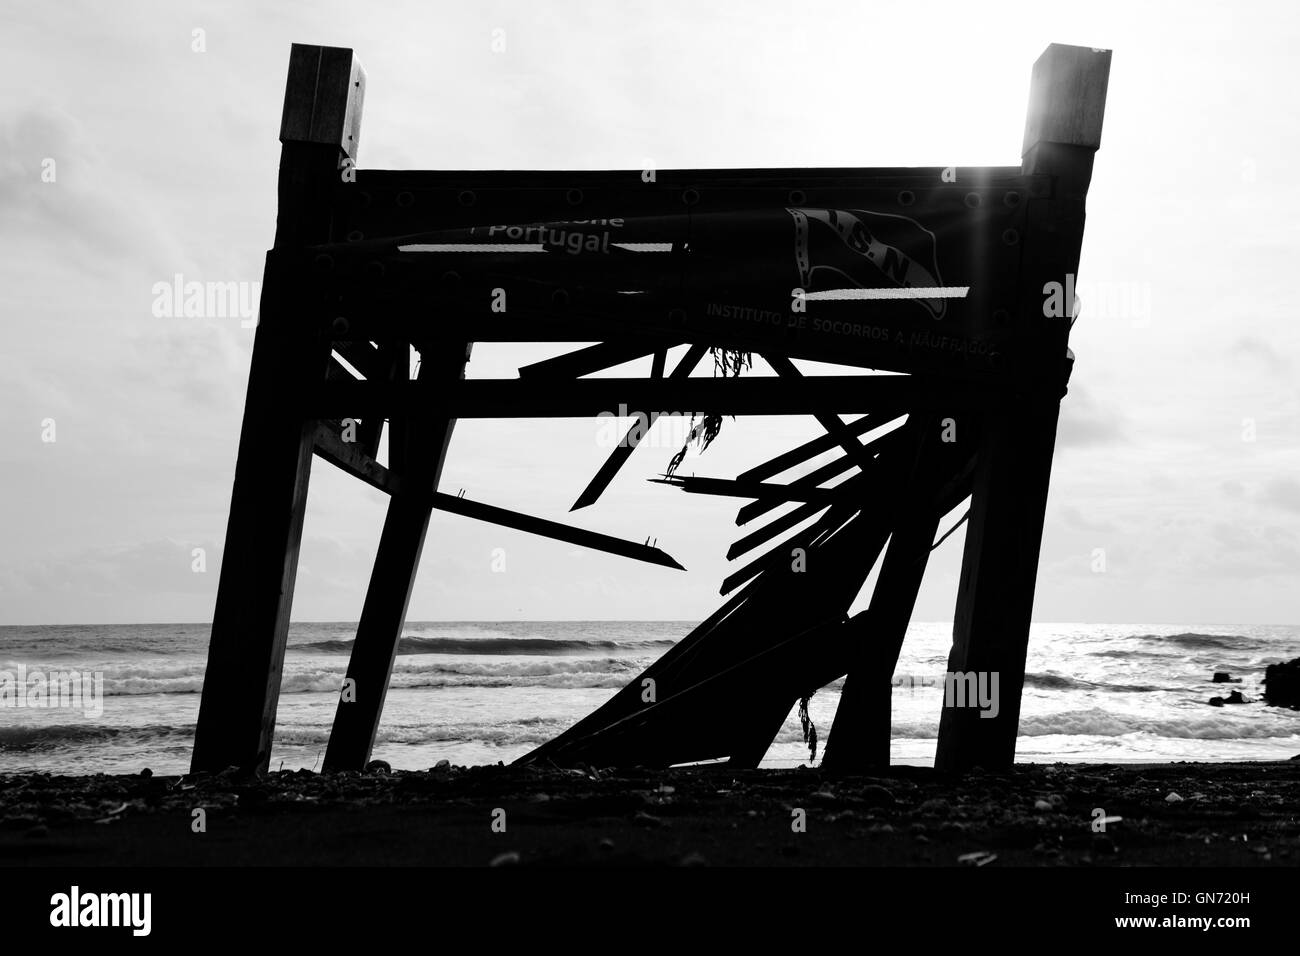 Destroyed lifeguard place at the beach. Black and white and centered - Stock Image